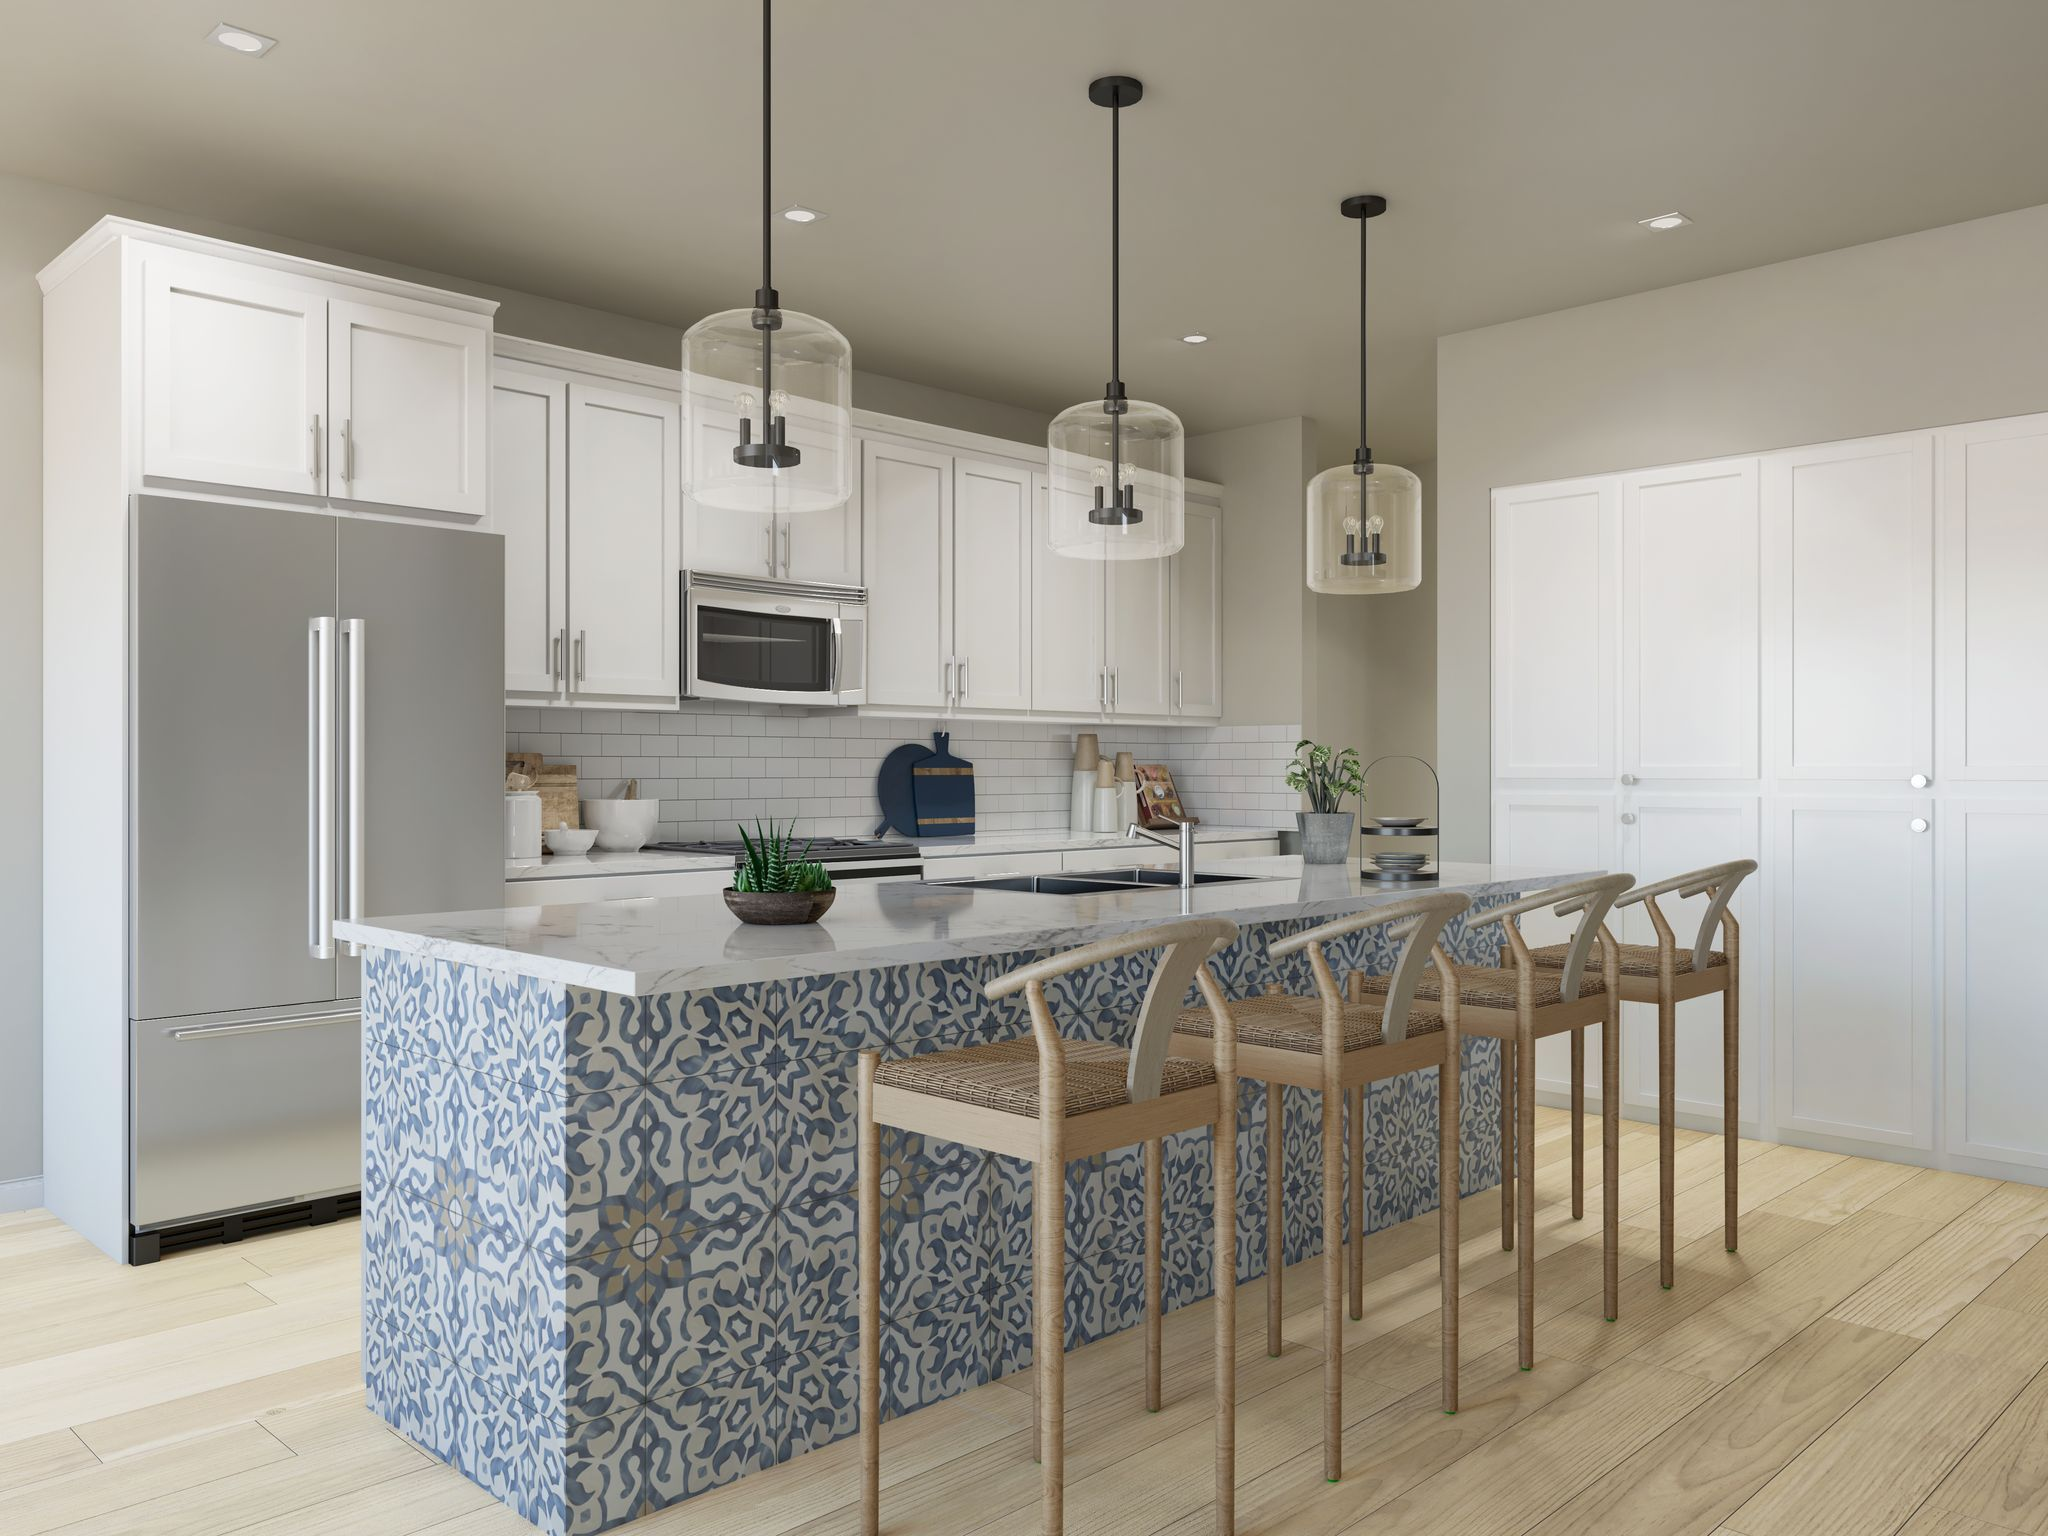 Kitchen featured in the Residence 1 By Santa Ynez Valley Construction in Reno, NV